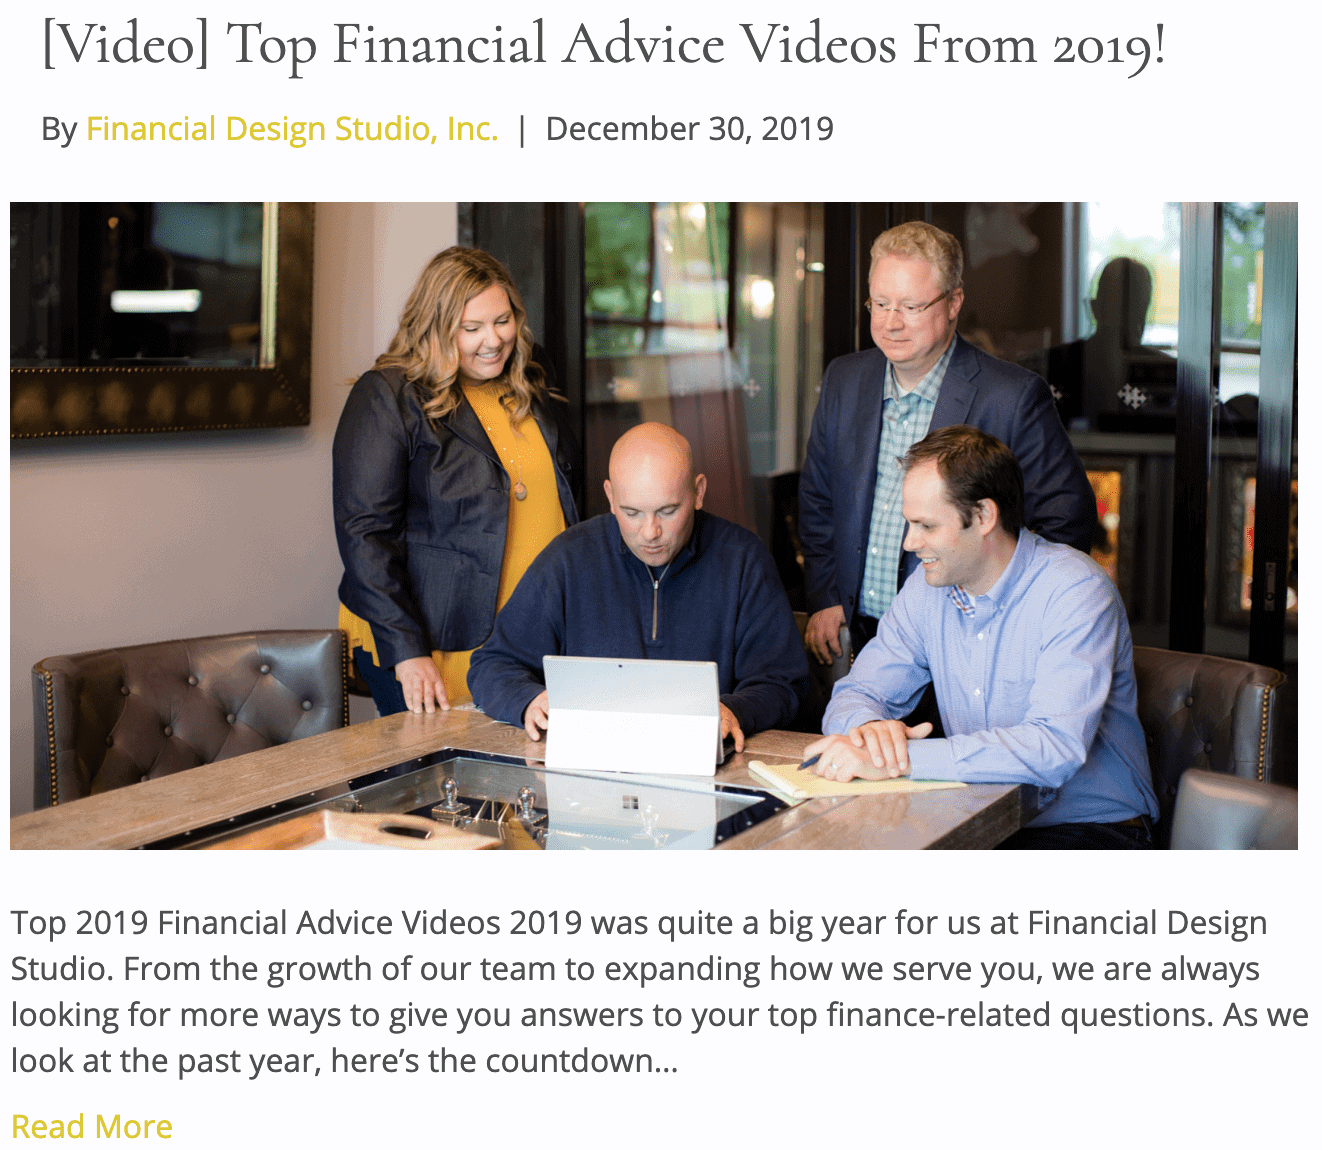 financial advisor fee only deer park barrington reminder to take action draft top videos